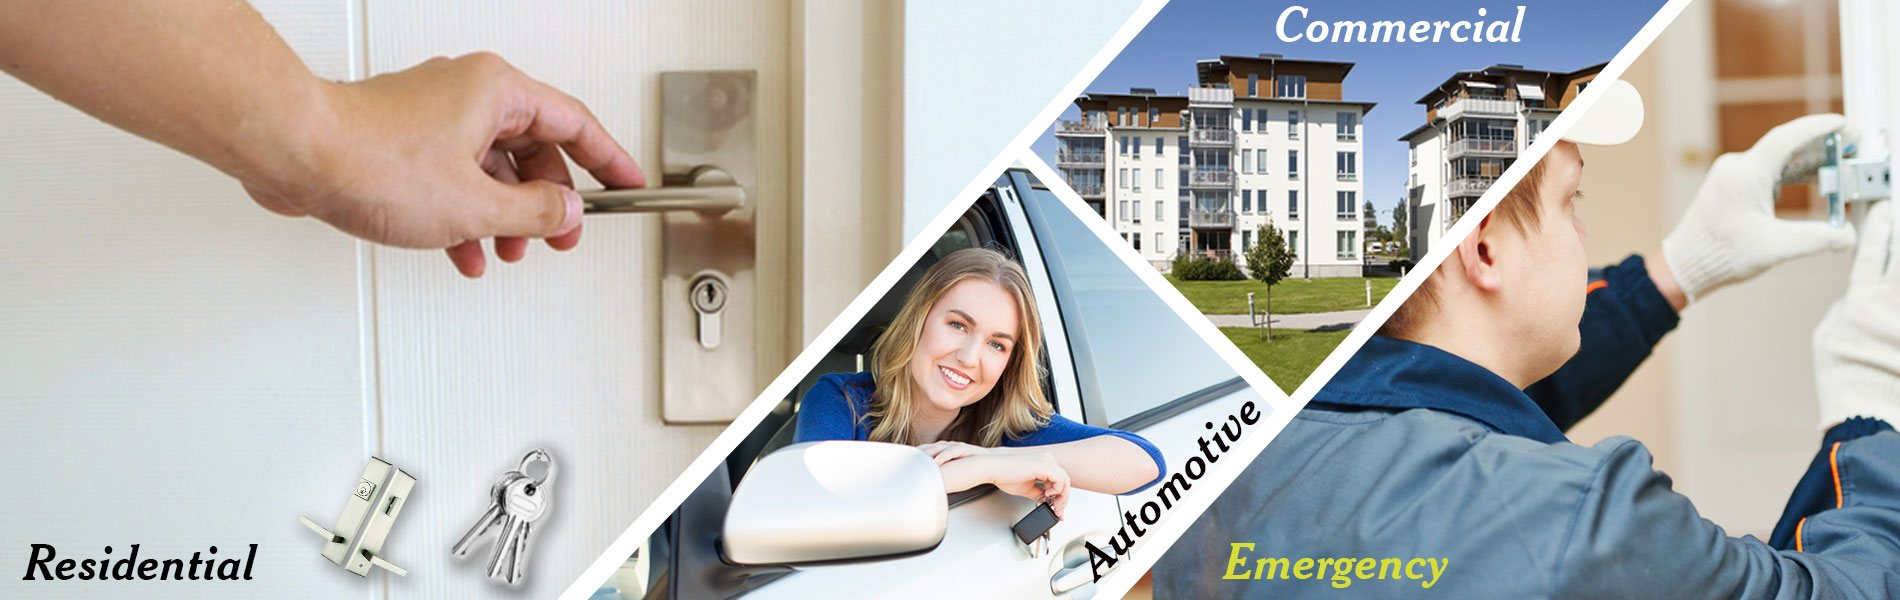 Safe Key Locksmith Service Cerritos, CA 562-263-5454